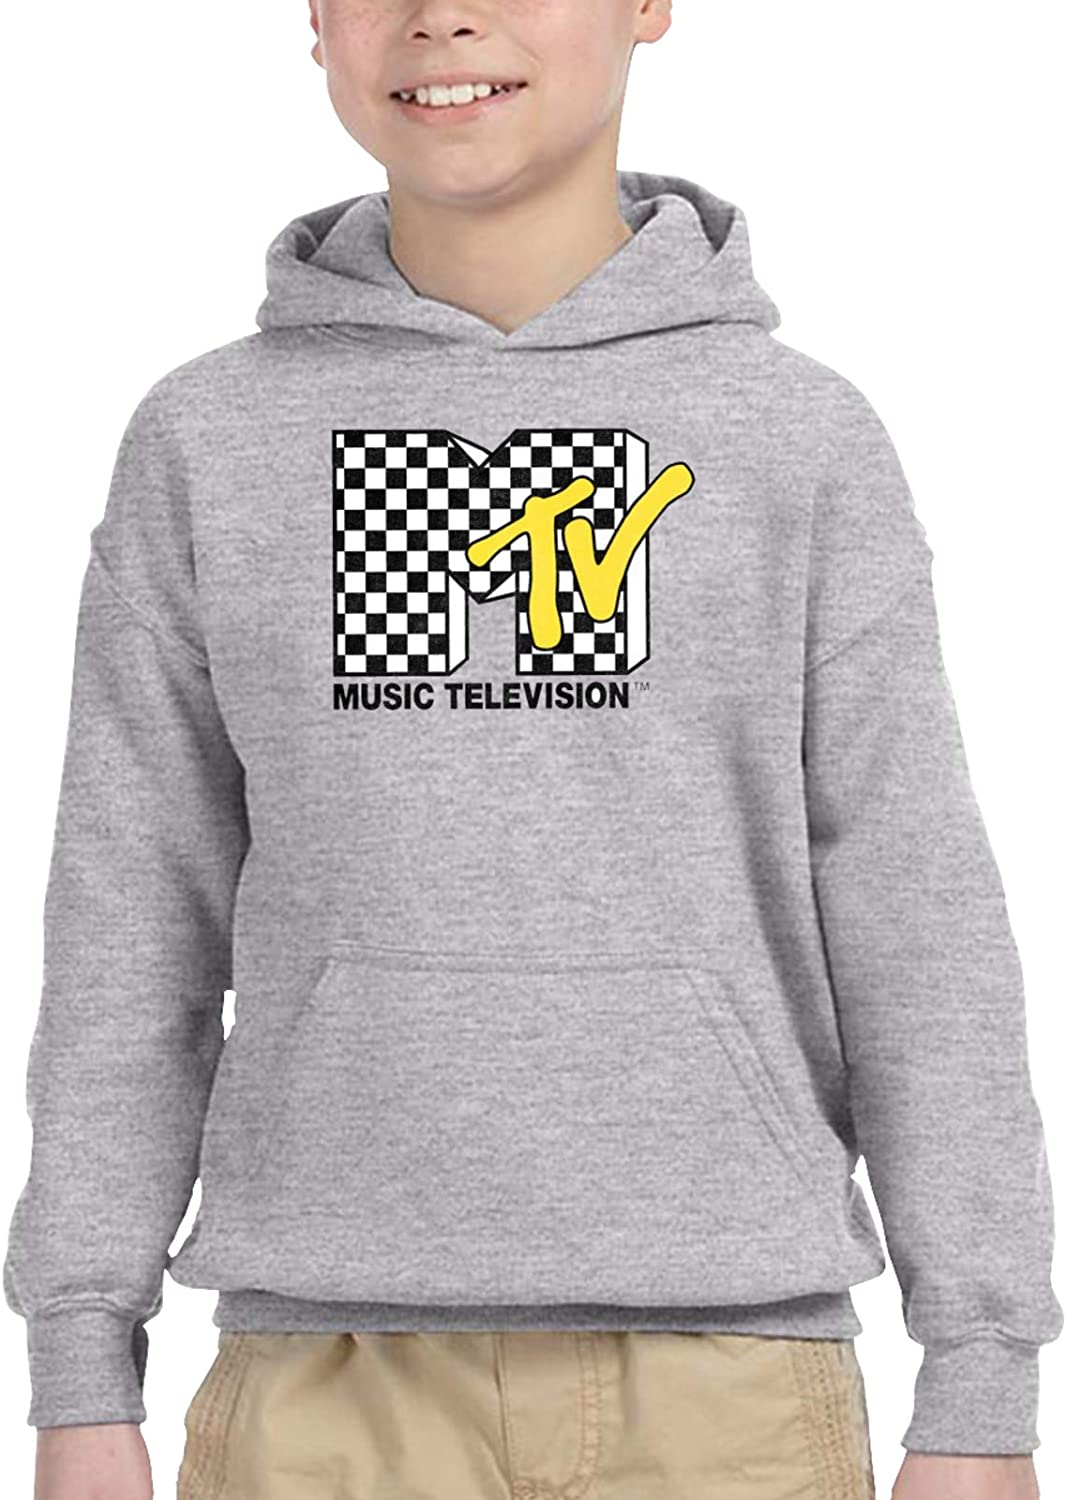 XKDIJIUJB I National products Want My MTV Casual Hooded Sweatshirt with P Pullover Topics on TV